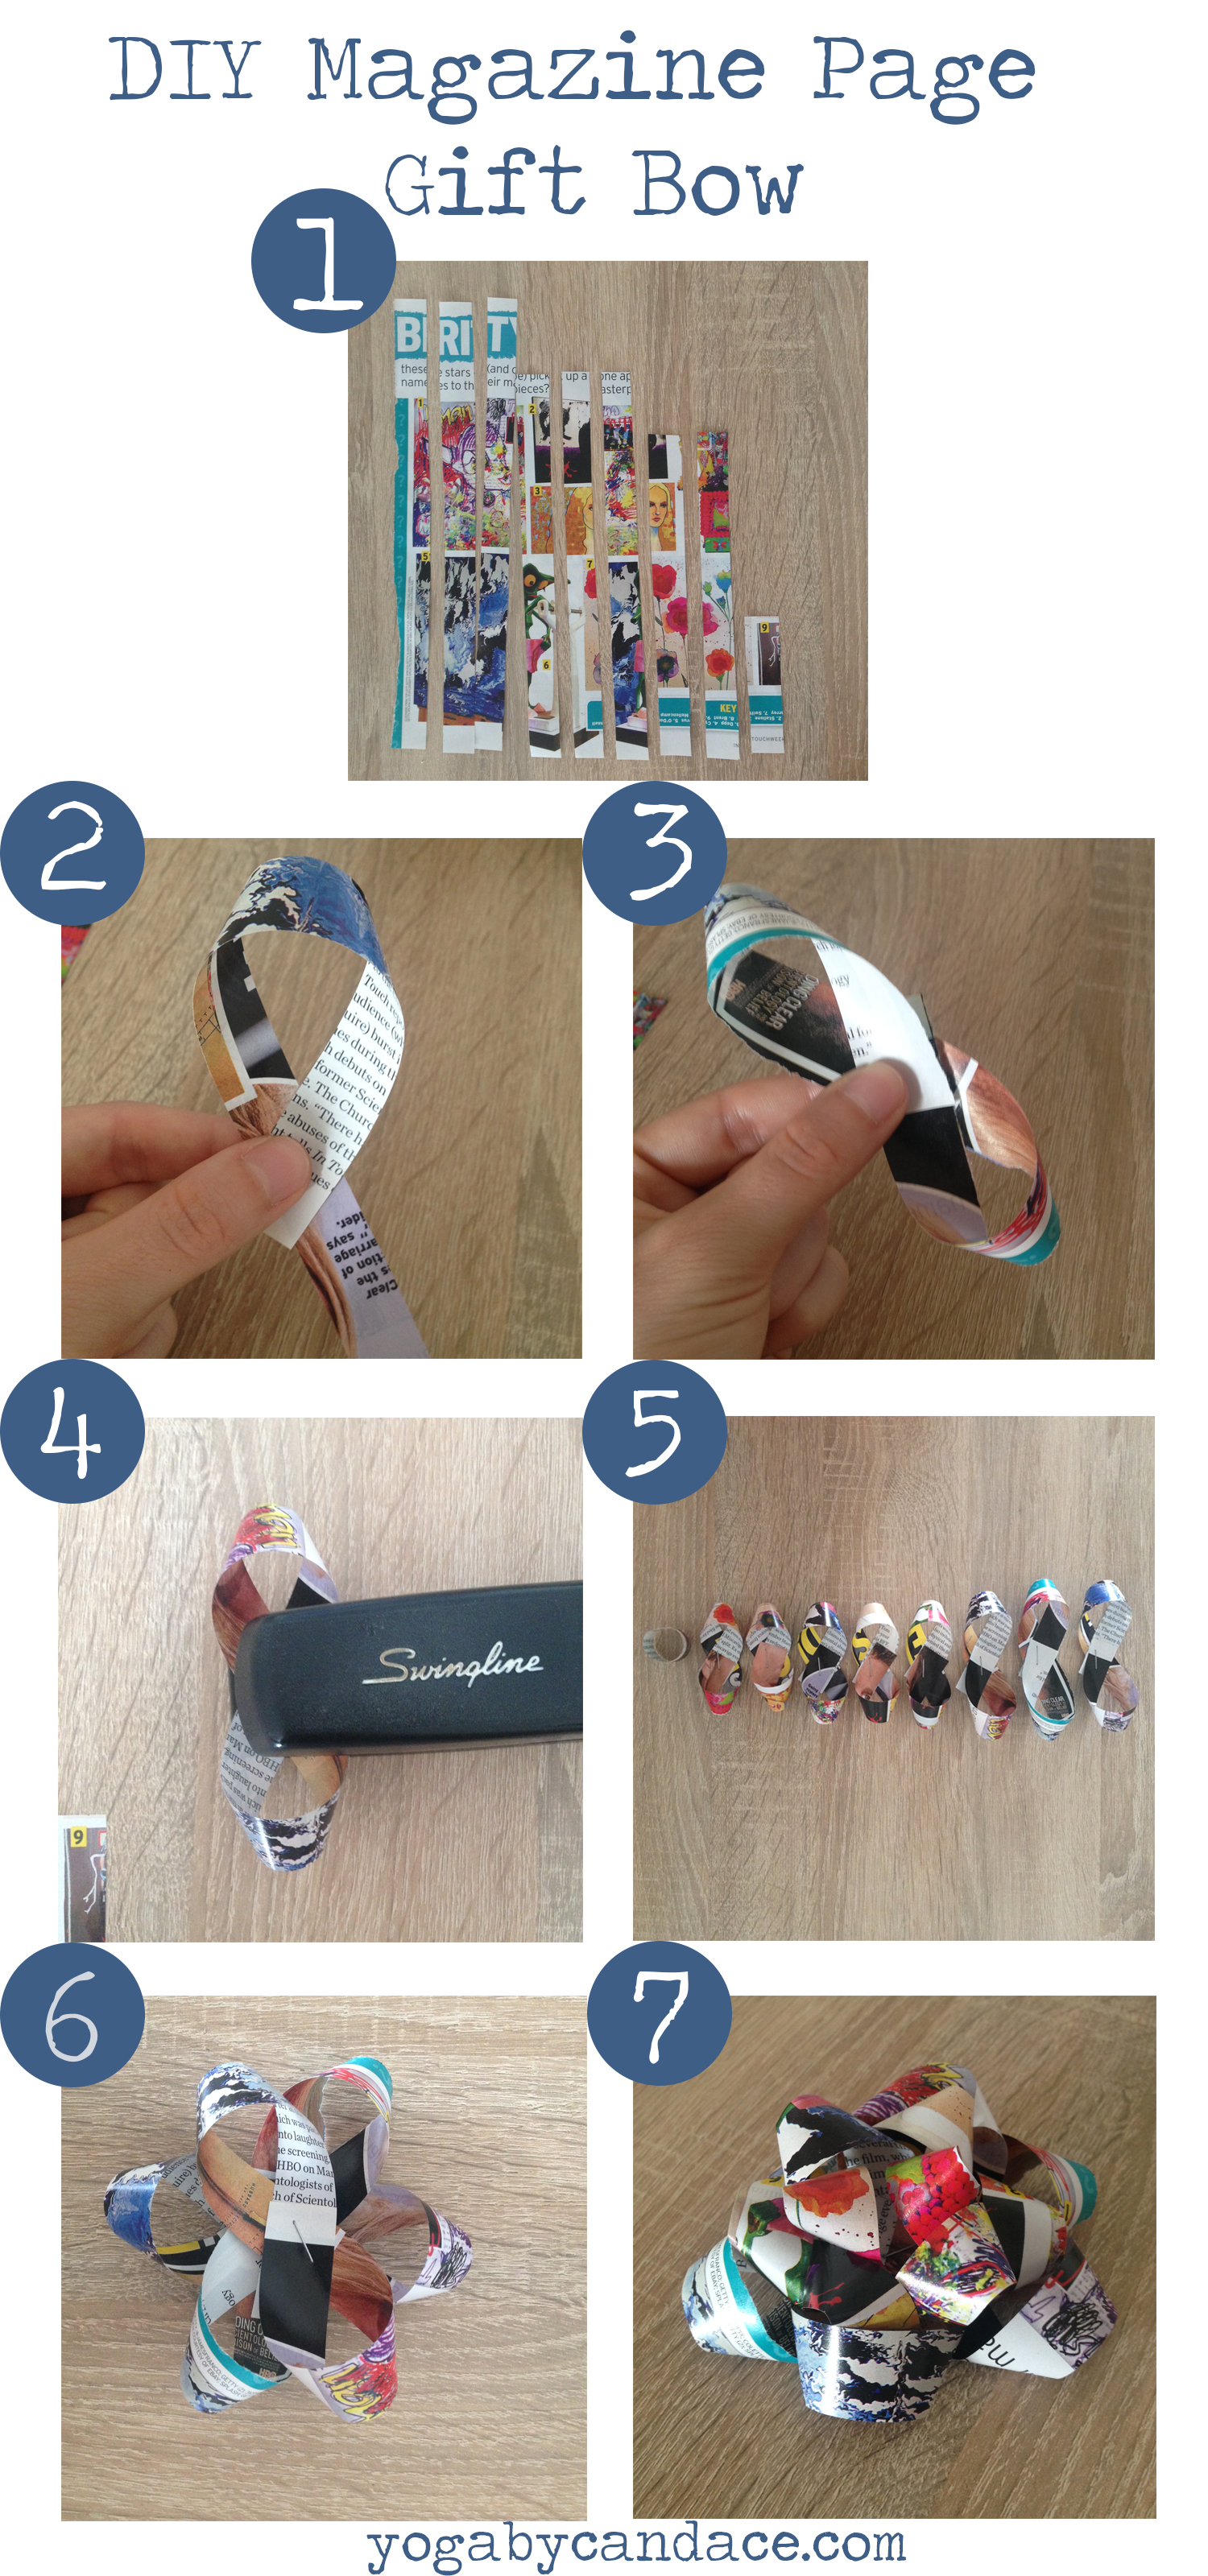 Pin now, make later - DIY Magazine Gift Bow